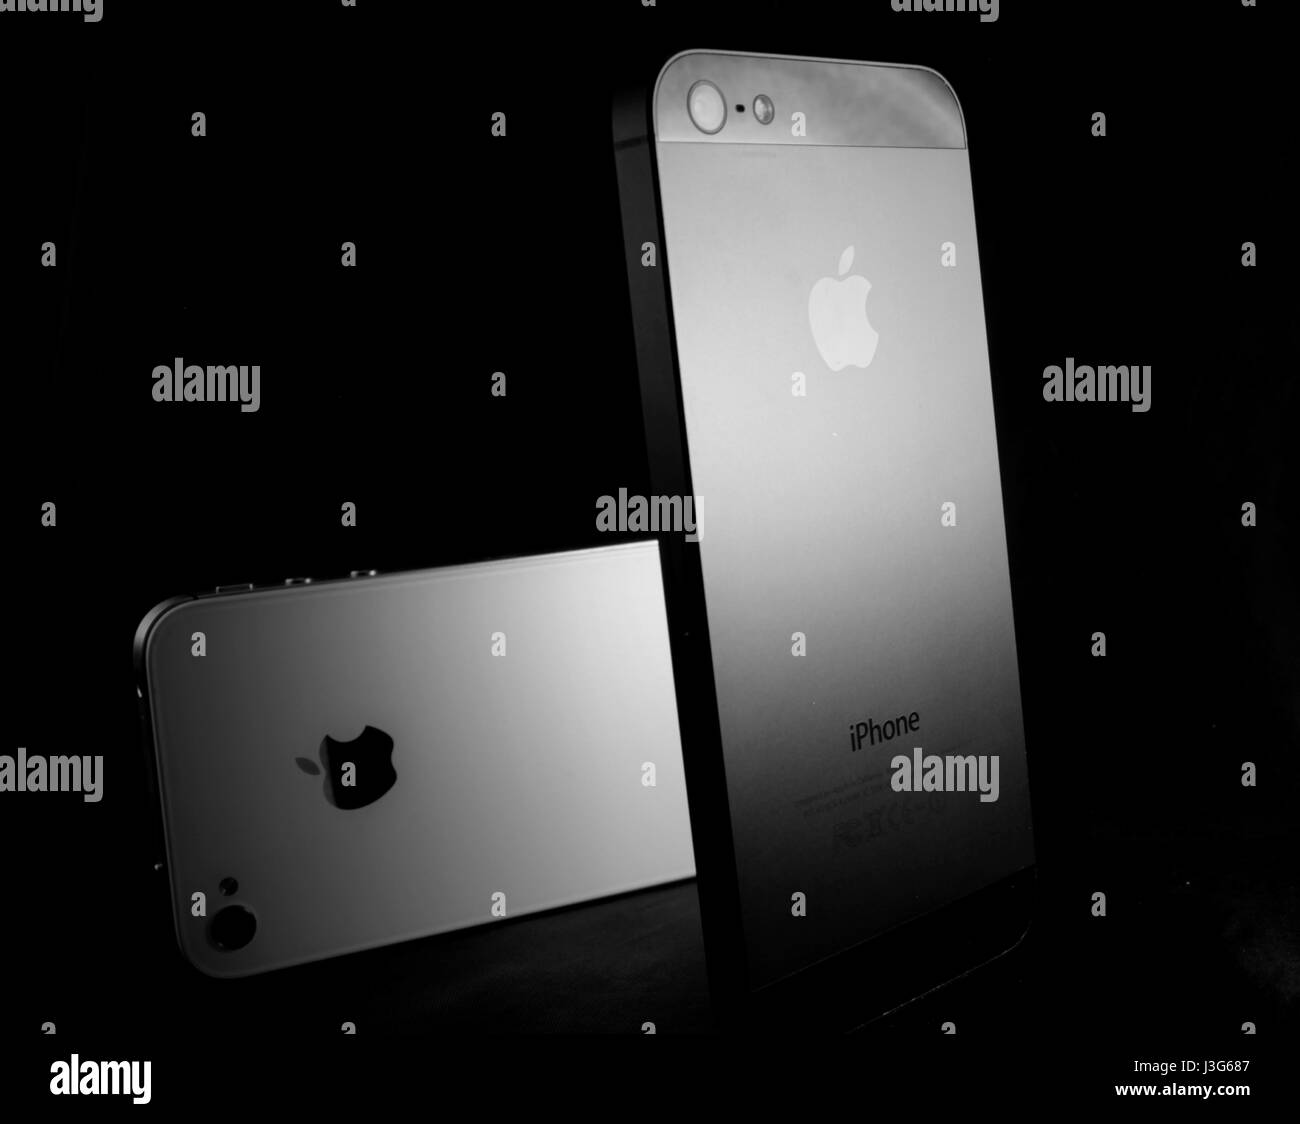 Two iPhones - Stock Image